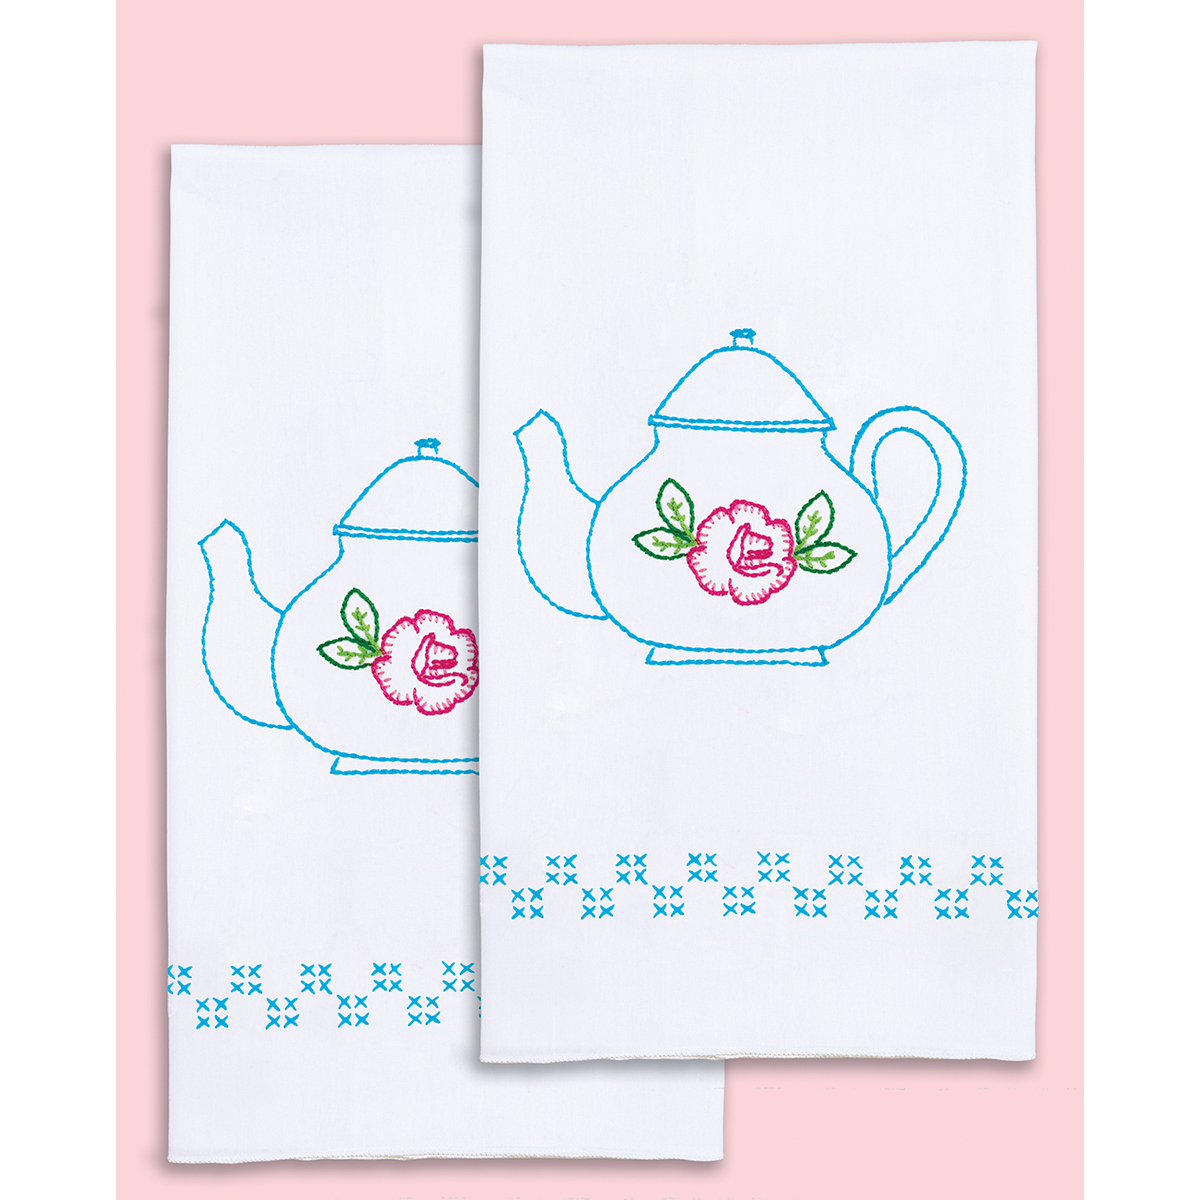 Stamped Embroidery Hand Towels - Teapot